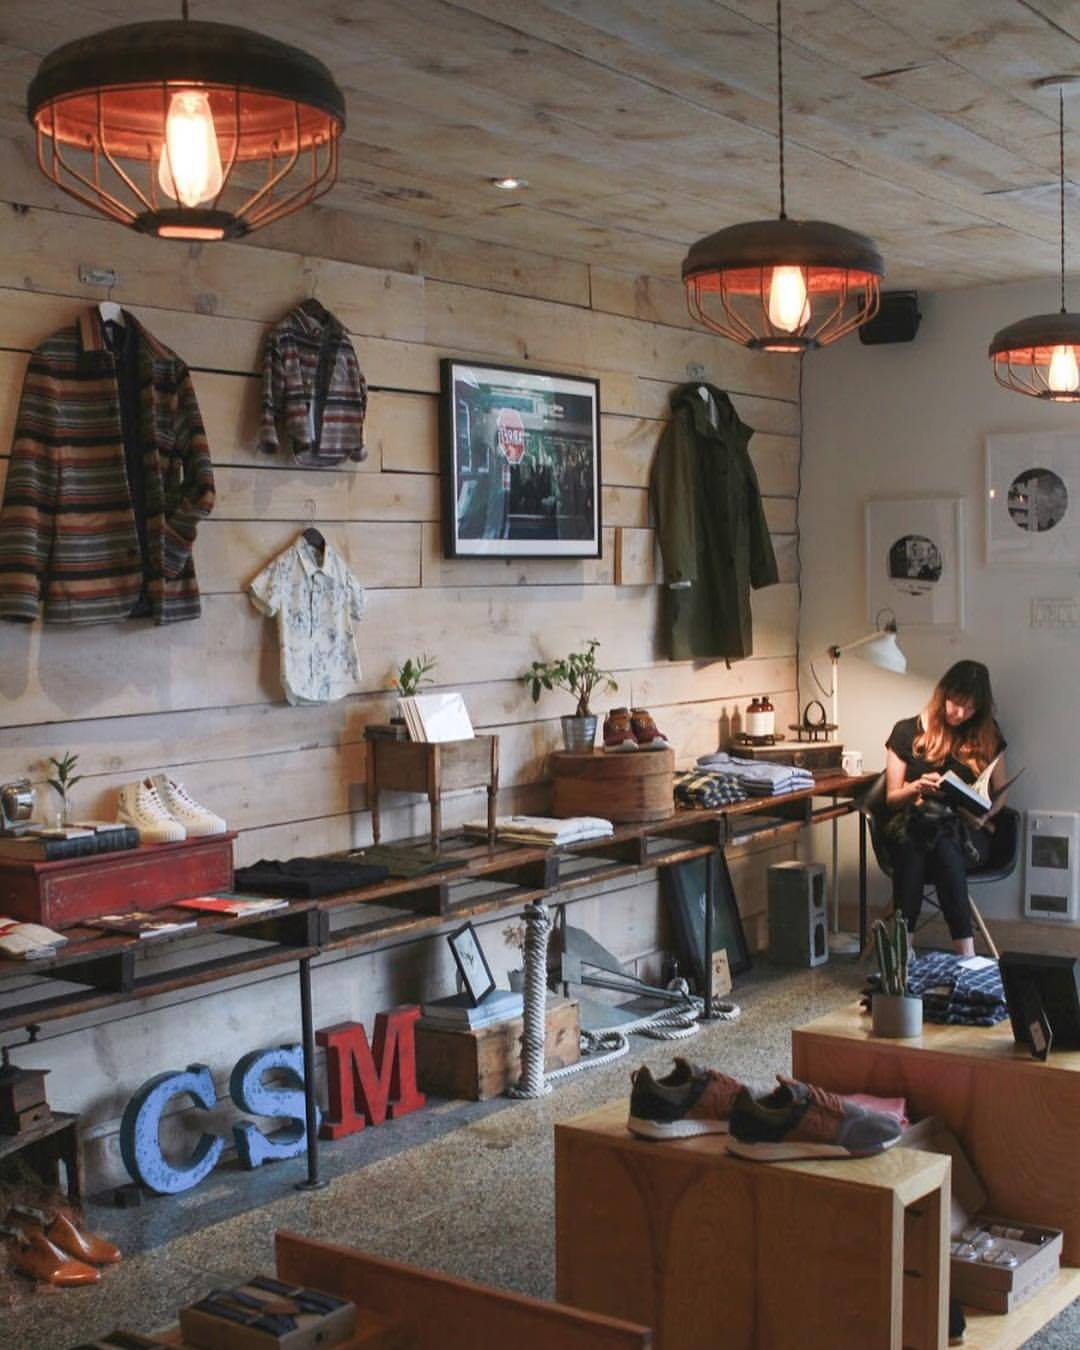 Shopkeeper Interview: Scott Meleskie of Clark Street Mercantile